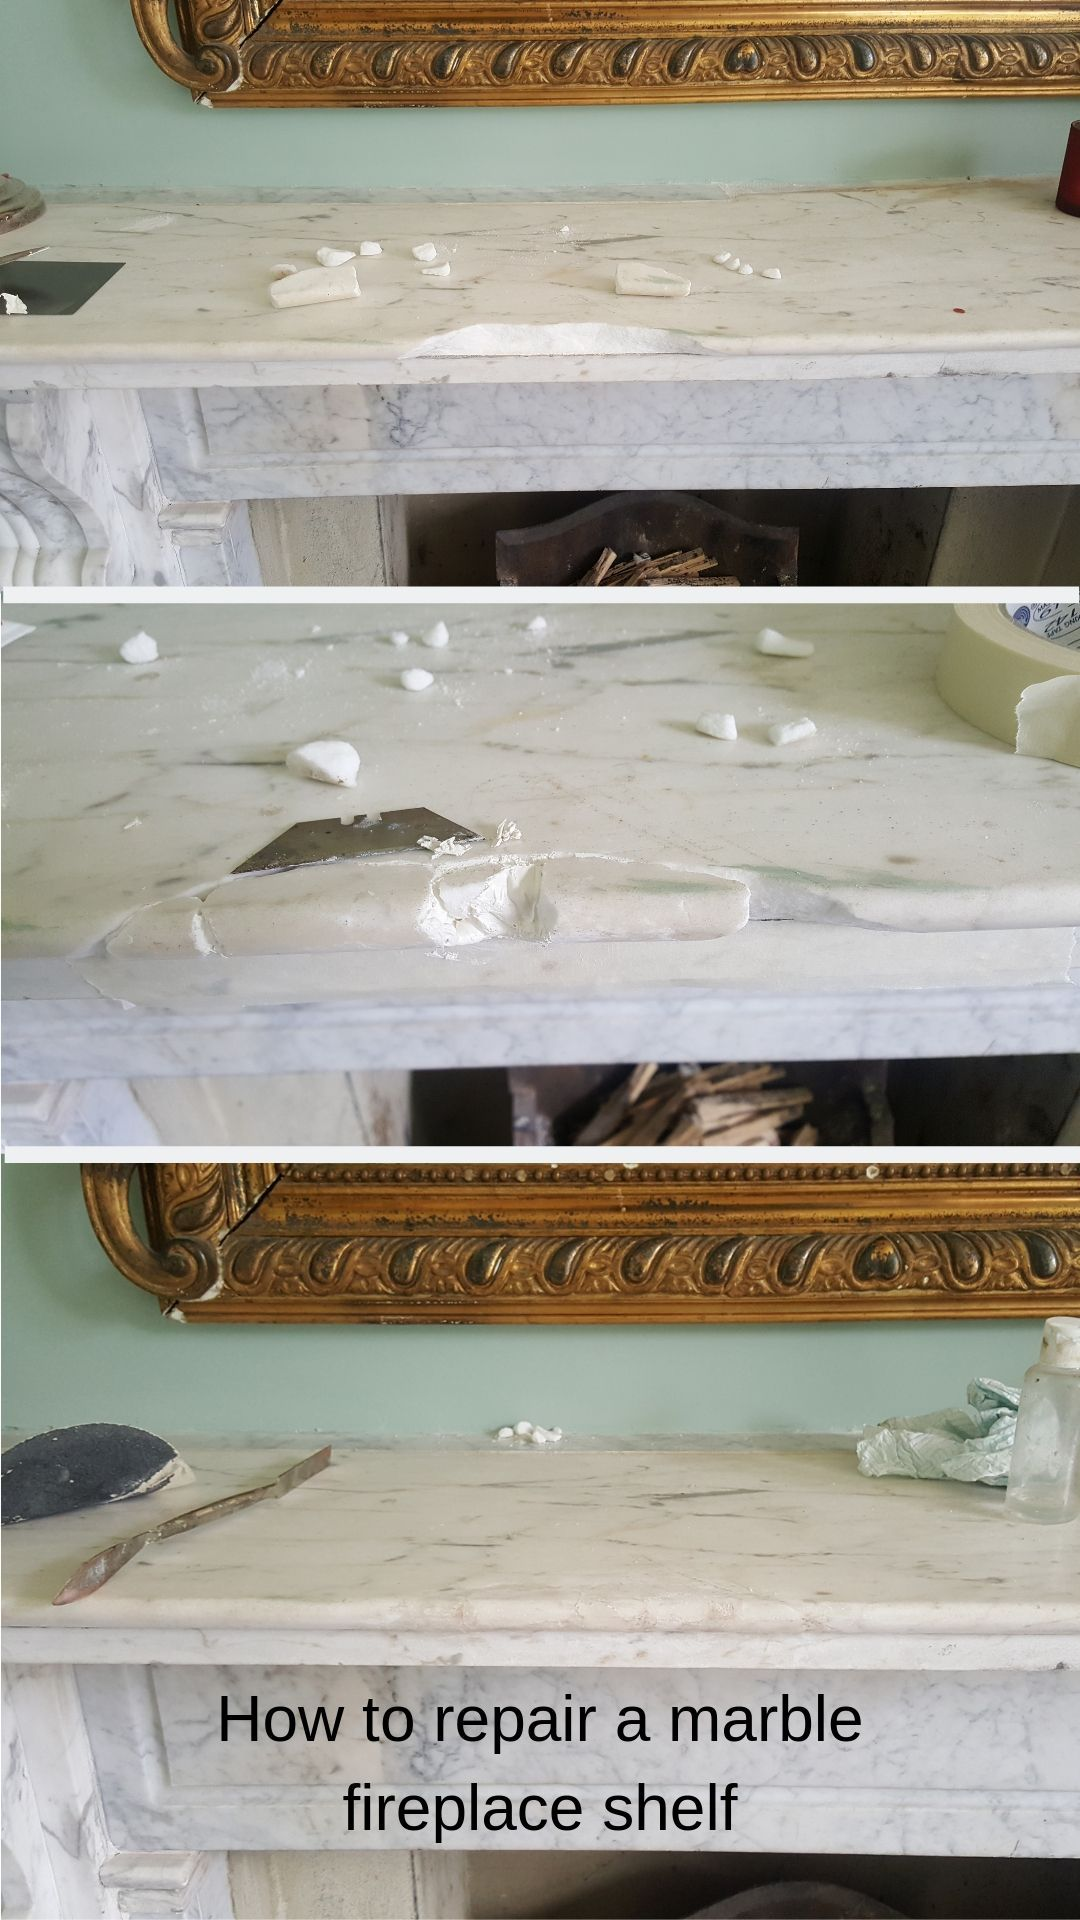 Damaged Marble Fireplace Shelf Repaired With Original Pieces Of